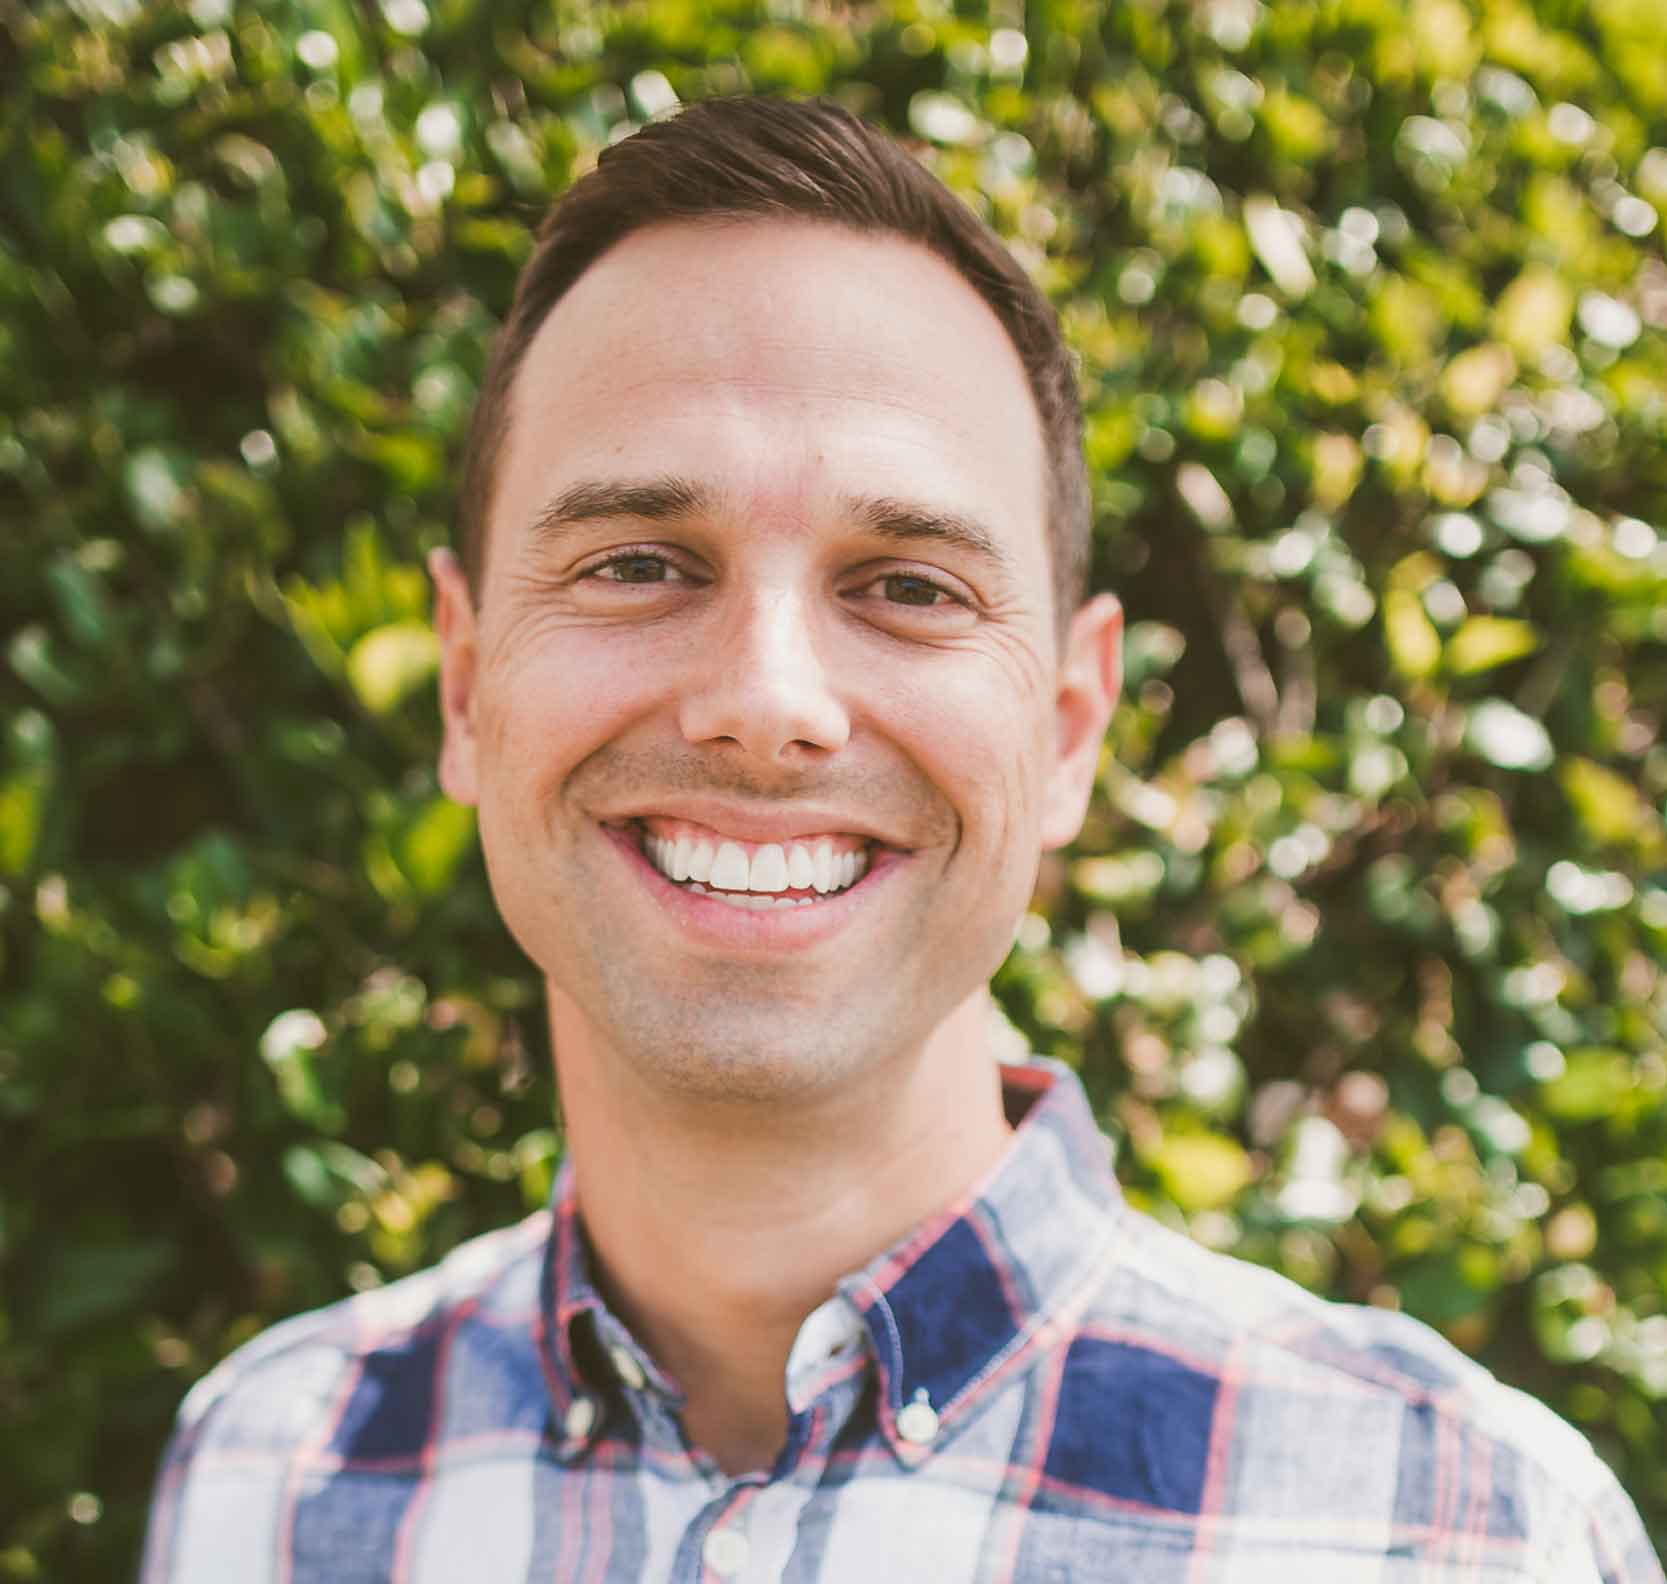 Brandon Whedbee - Brandon came to faith at the age of 9 as his parents faithfully shared the gospel with him. Upon graduating from Liberty University in 2006, he attended Liberty Baptist Theological Seminary and was married to April in 2008. Brandon served as a pastor to the faith family of Christ Community Church in Charlotte, NC for 7 years. In 2015, the Lord led the Whedbees to Tampa where Brandon would join the team at Covenant Life Church in anticipation of being sent out as a pastor to The Heights Church. Brandon is dad to Anderson and Crosby and serves The Heights Church as a staff pastor with the primary roles of worship, discipleship and care of the church.